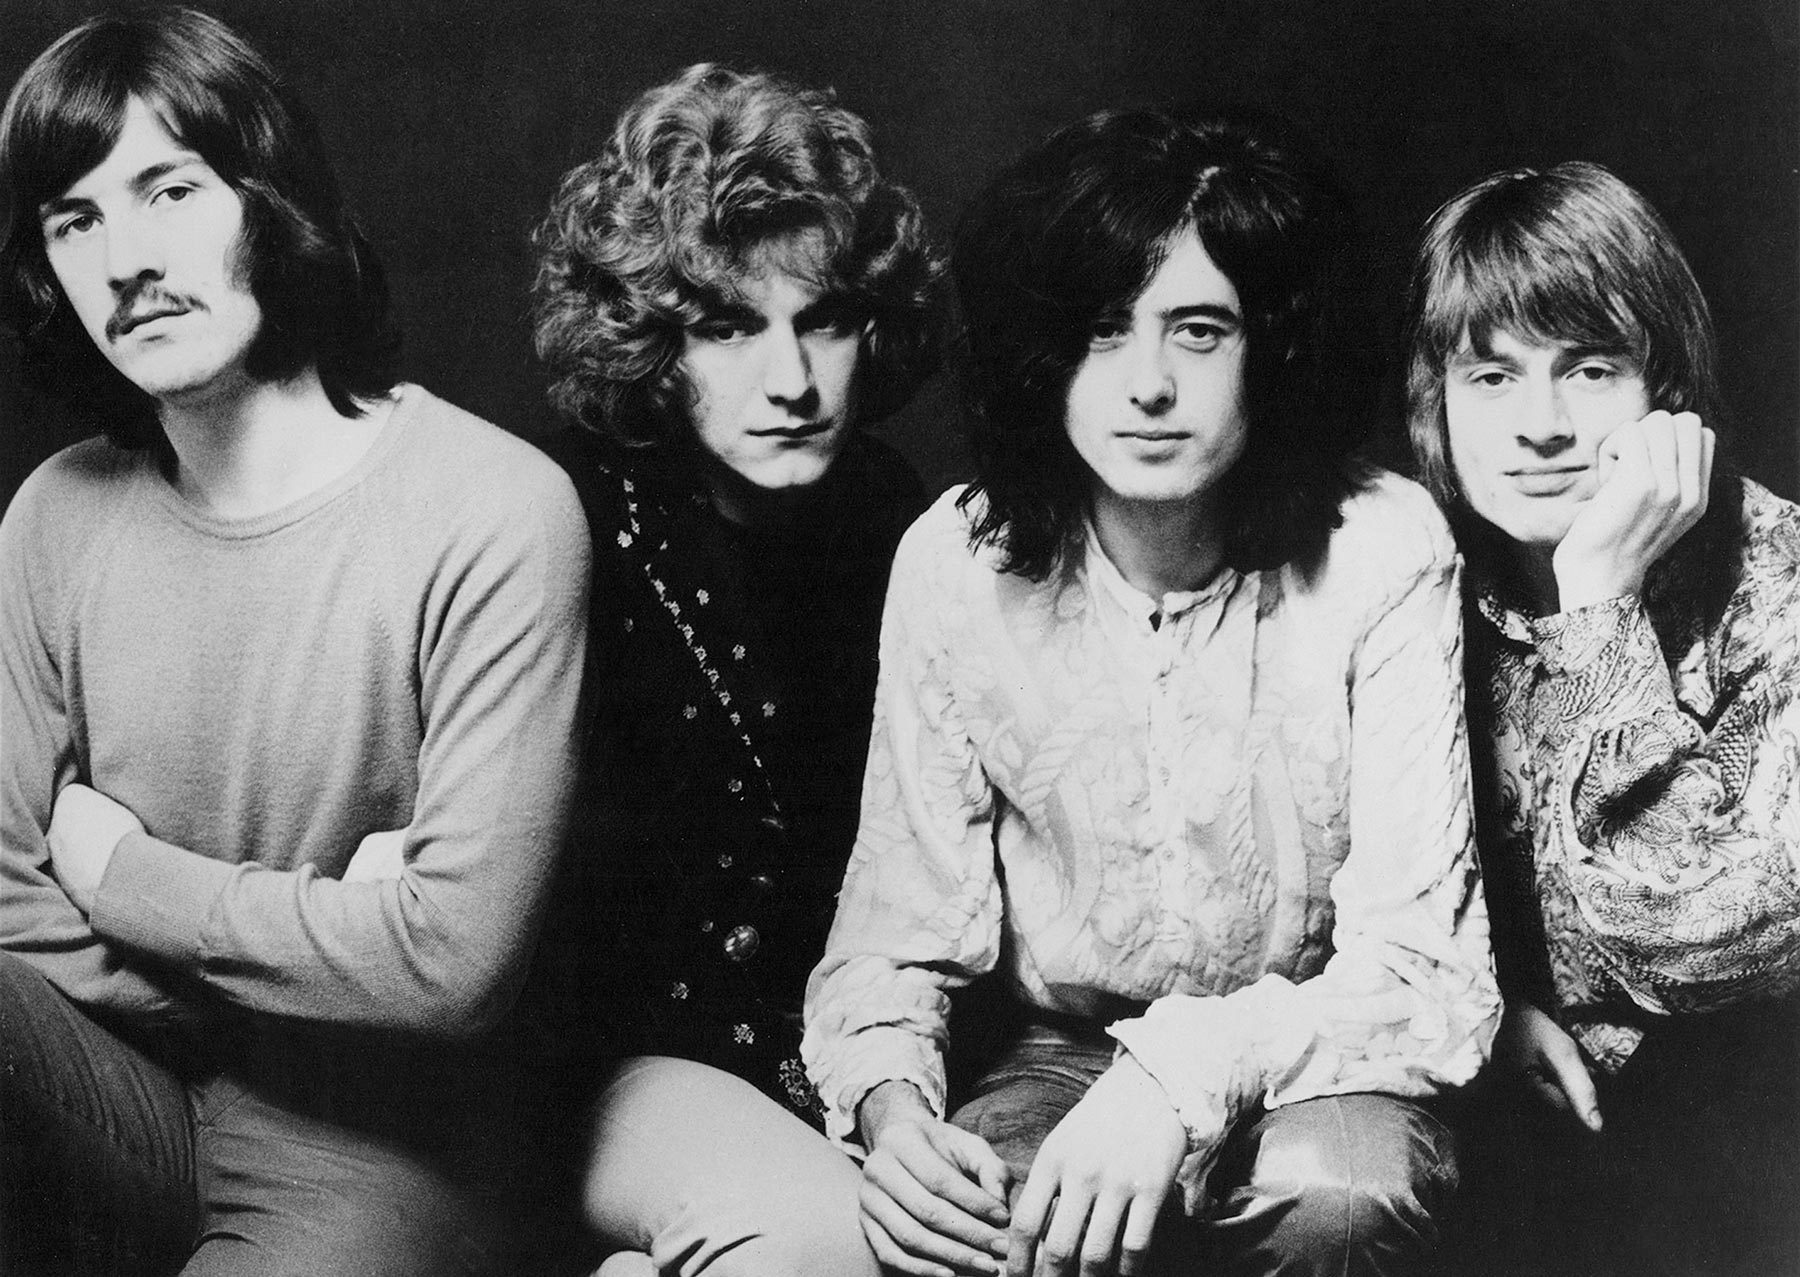 Probity Merch - Official Led Zeppelin Merch - Home Page Slider